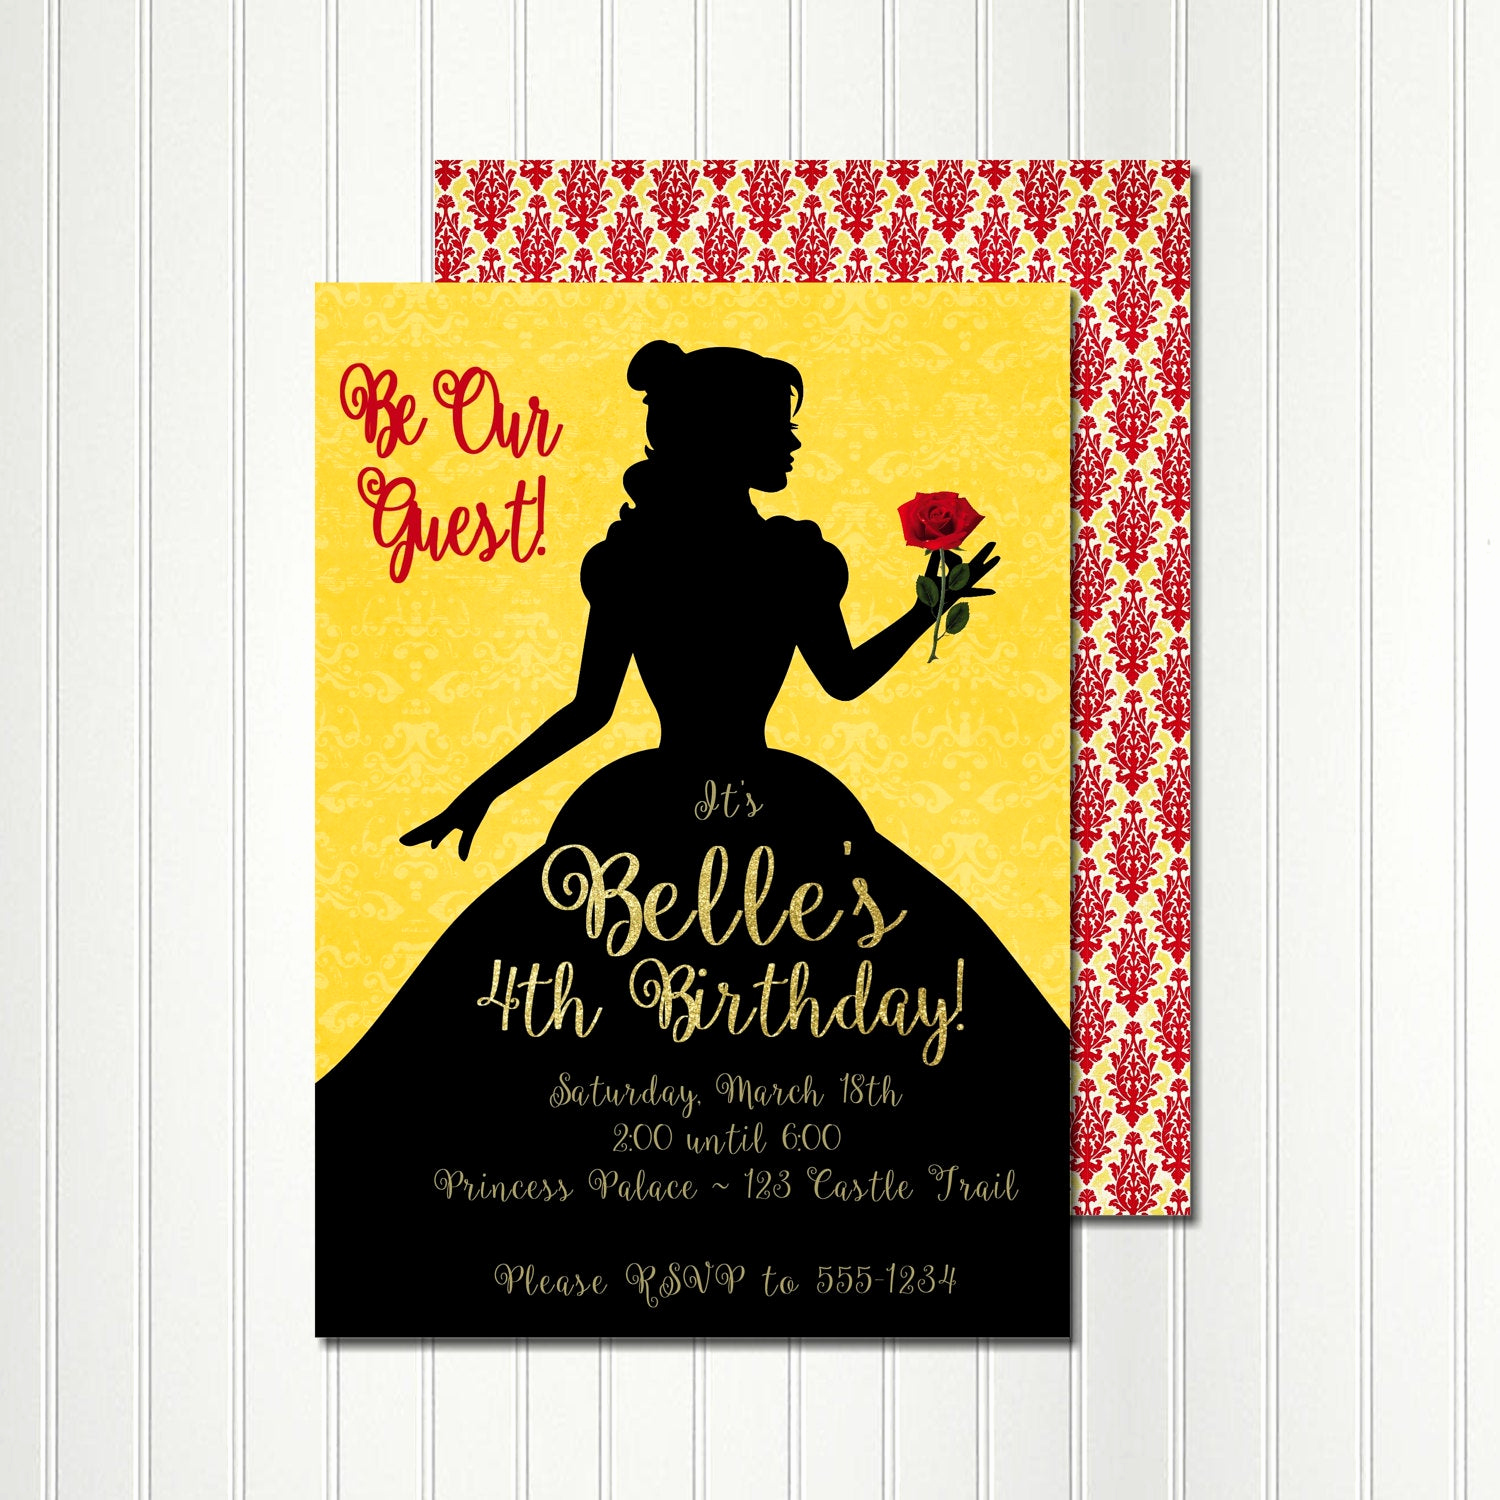 Beauty and the Beast Invitation Unique Belle Invitation Belle Silhouette Belle Birthday Belle